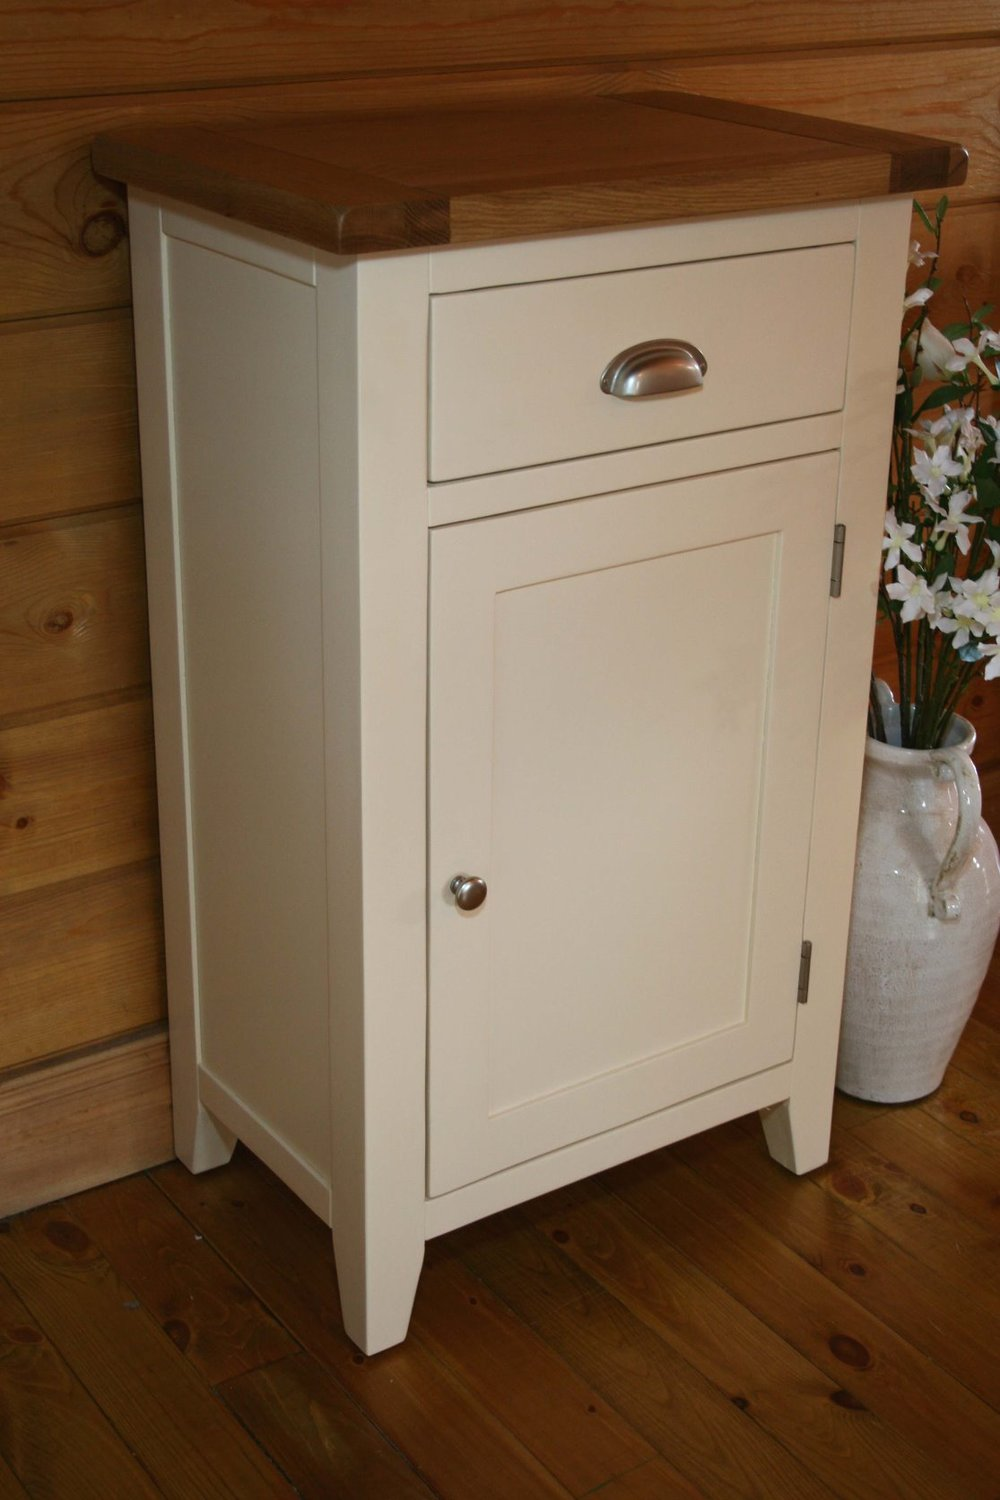 Tall Hall Cabinet Colour-Ivory   w 60 x d 40 x h 100 cm € 430 ( 40% Off - NOW € 258 ) Product Code: CANB063